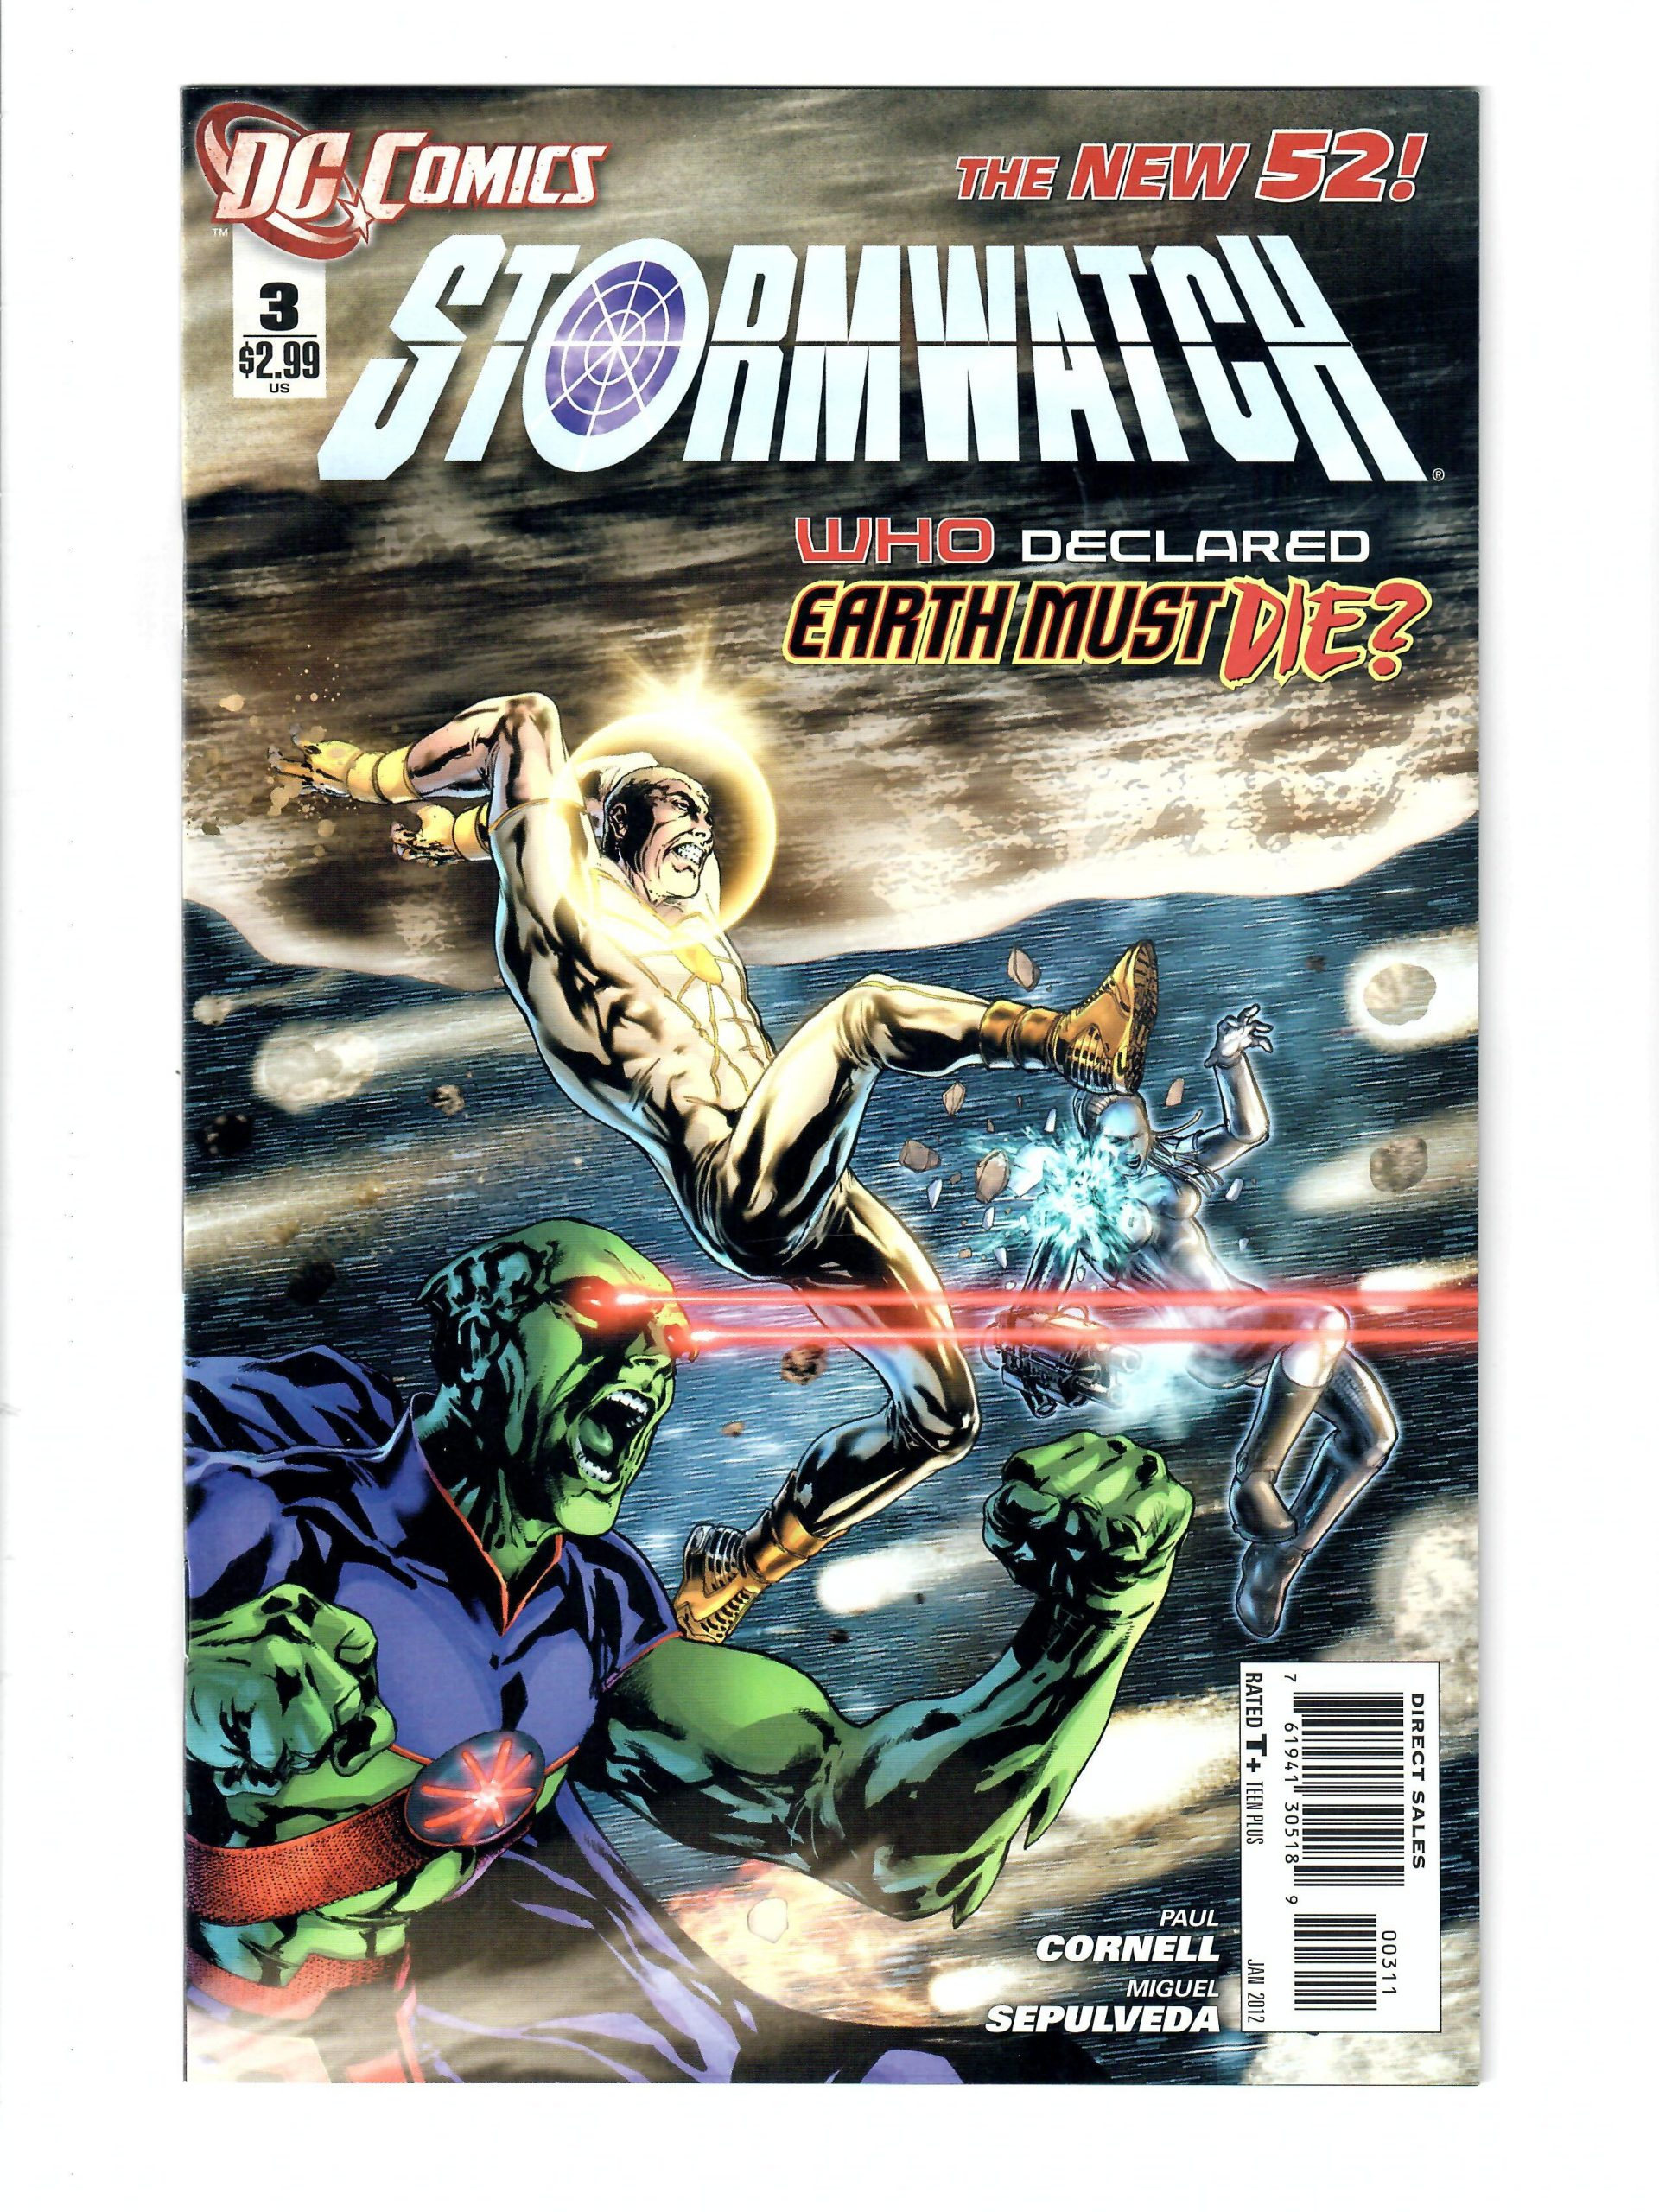 DC Comics Stormwatch The New 52! #3 Jan 2012 Comic #141840-10